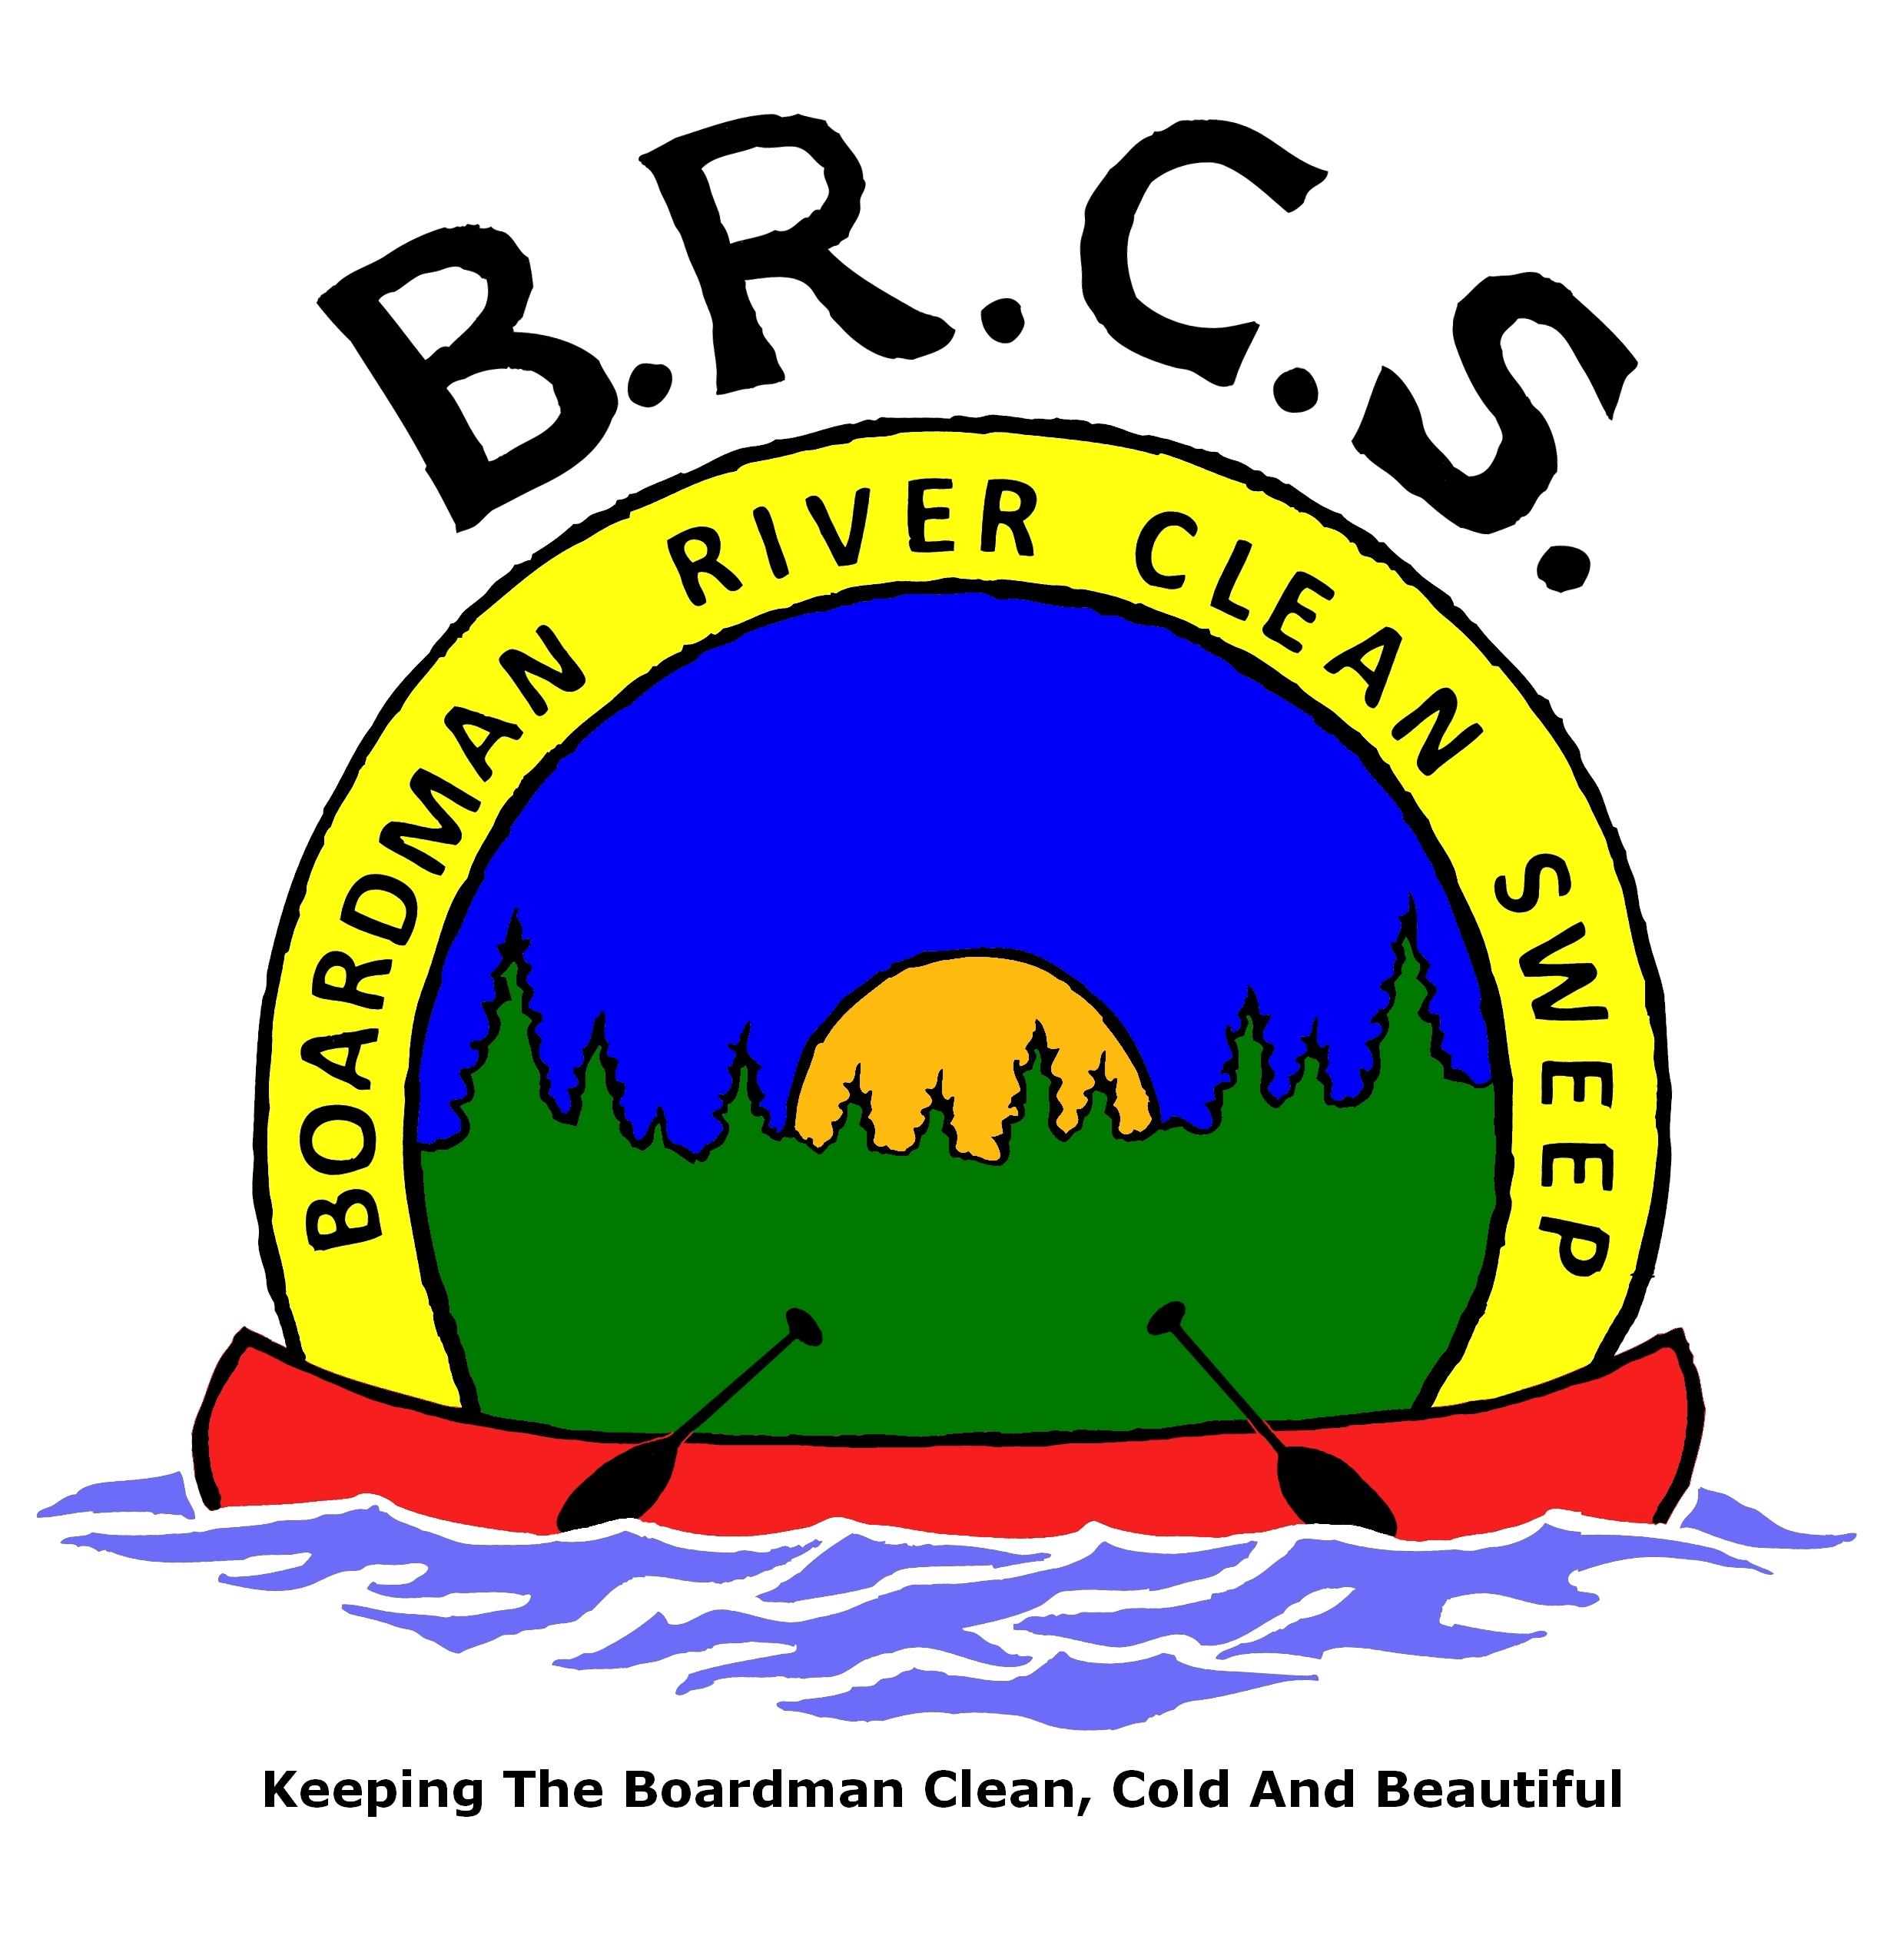 BRCS - Keeping the Boardman Clean, Cold and Beautiful For 15 Years